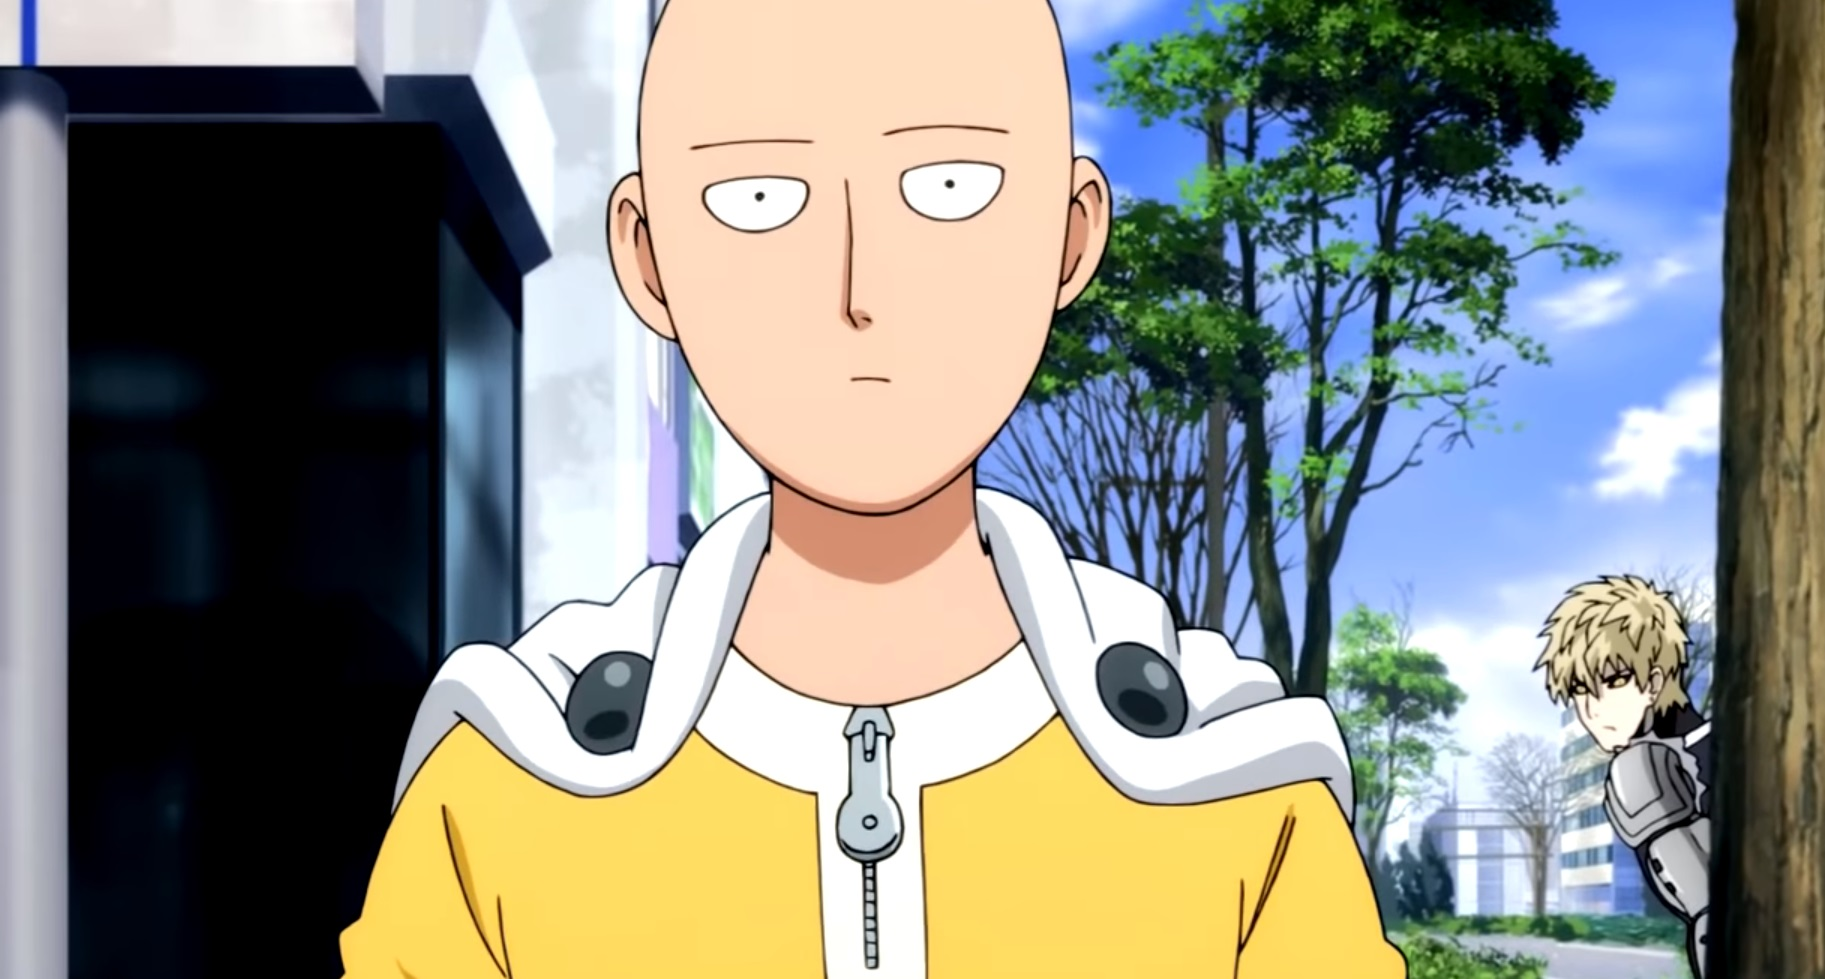 One Punch Man Season 3 Release Date might not happen in 2020